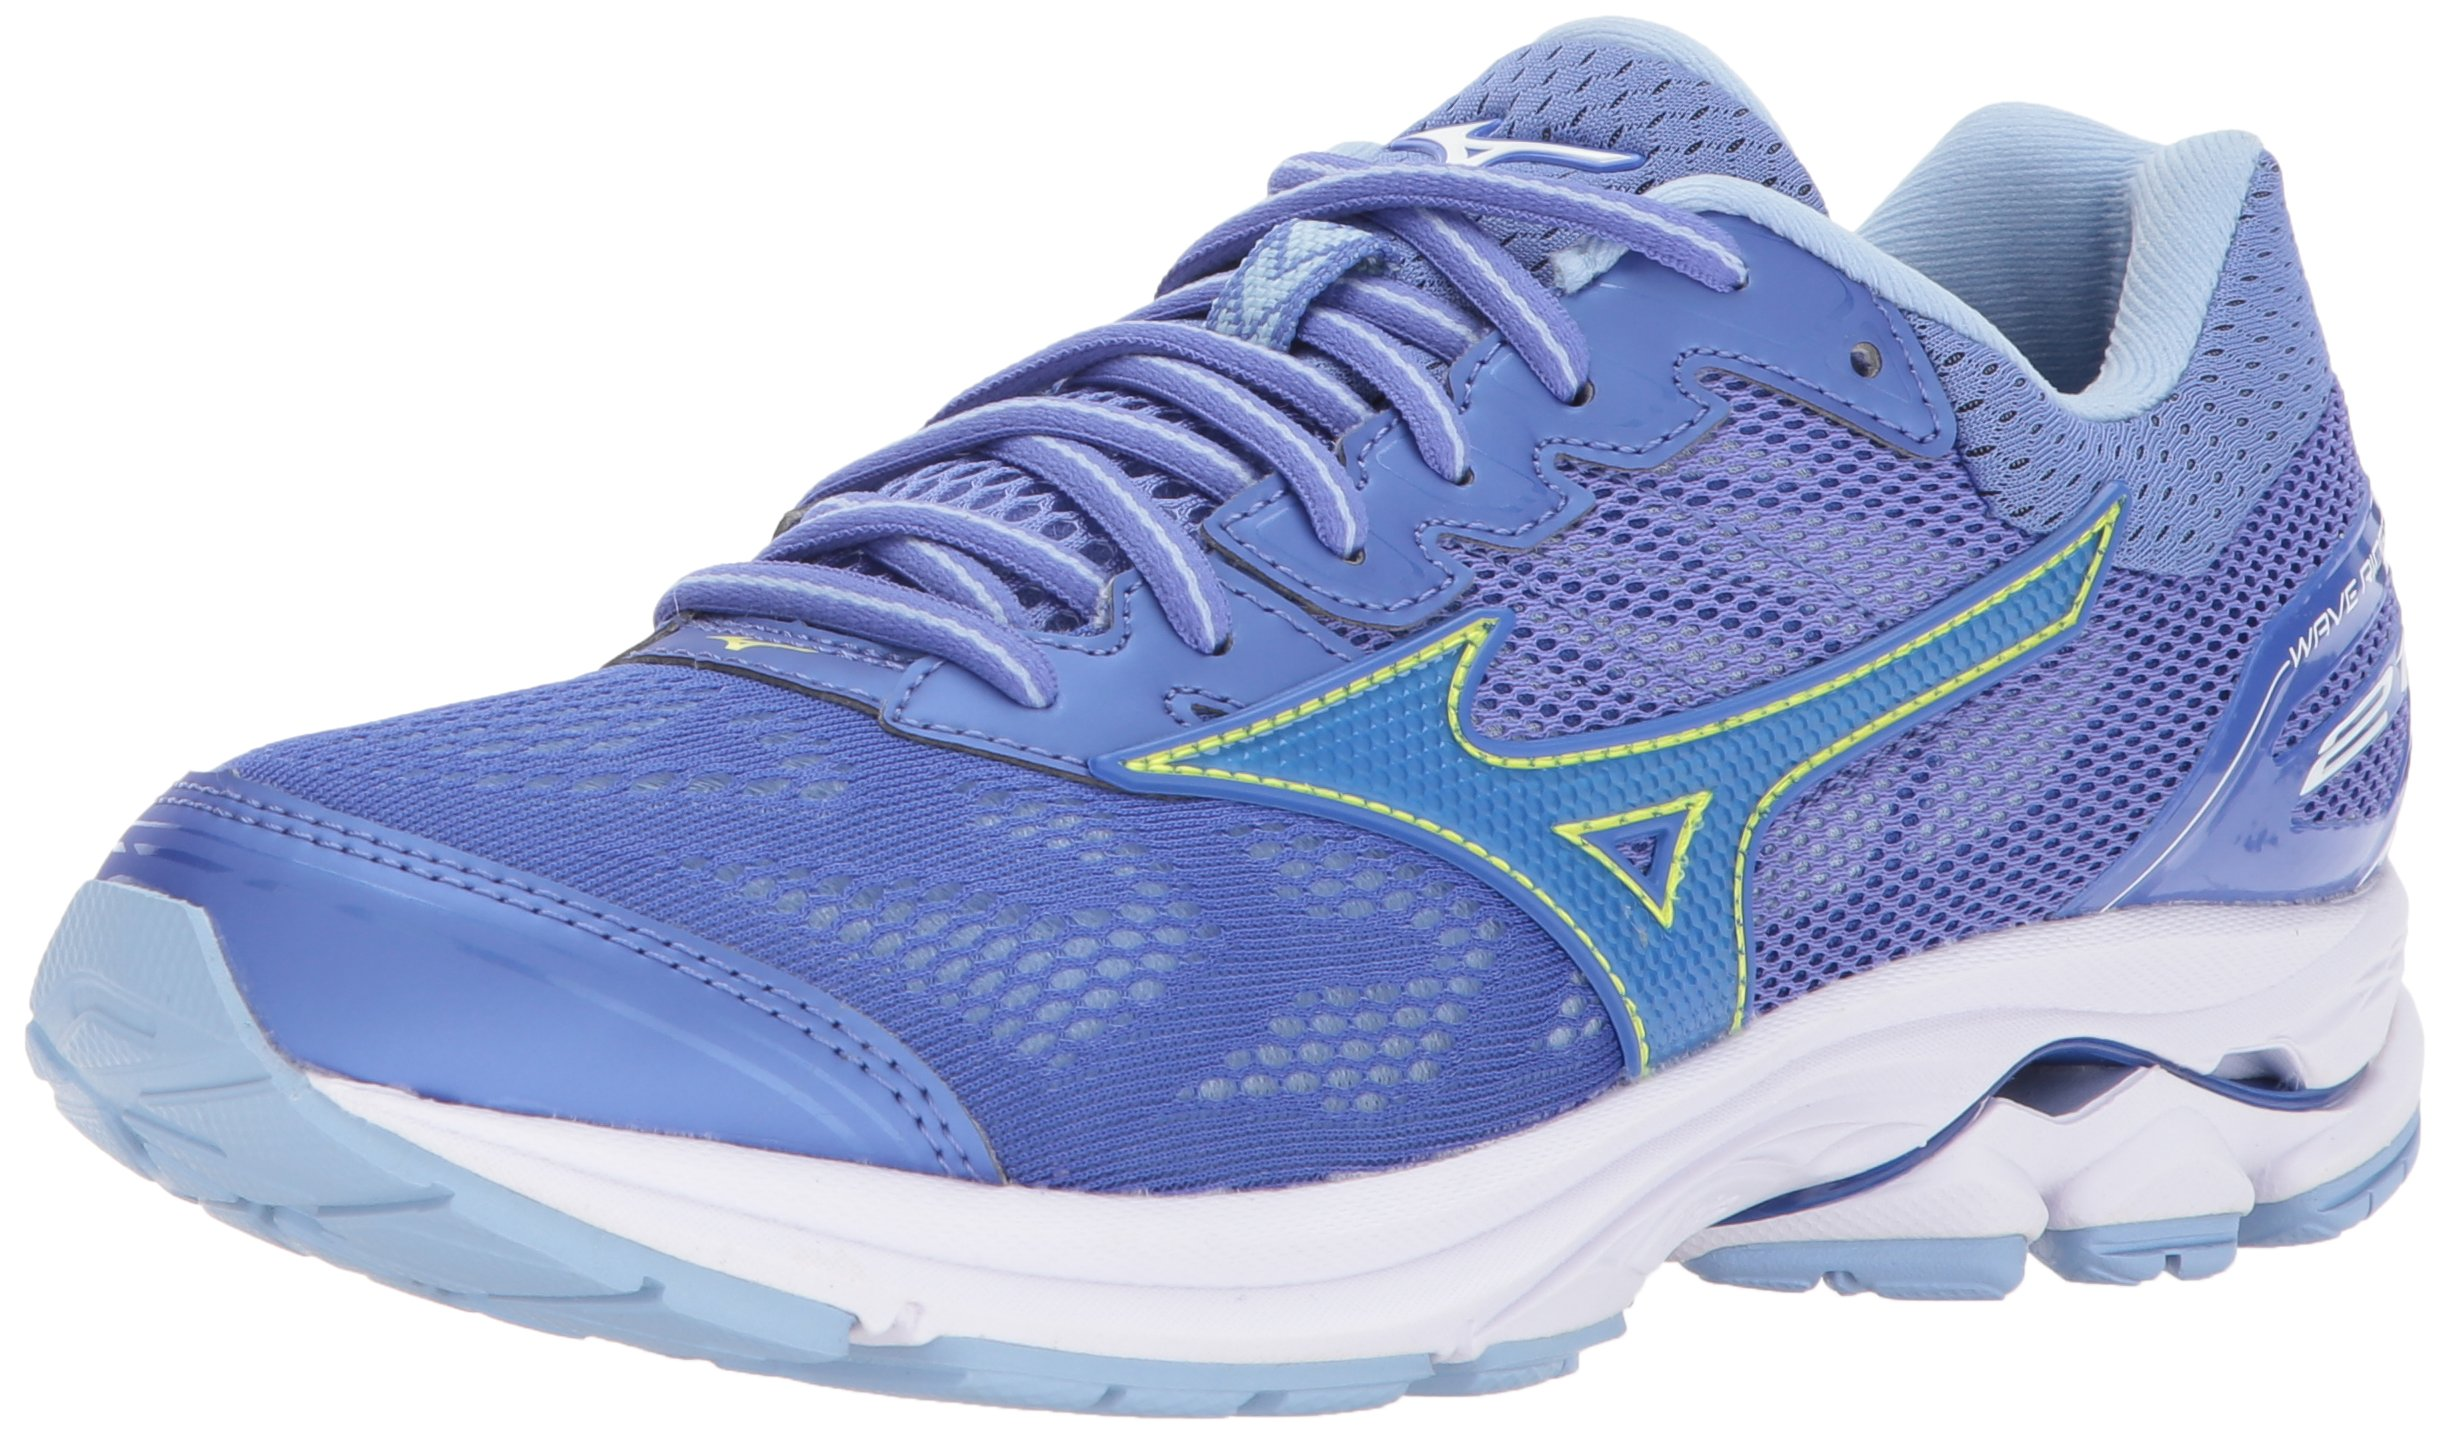 Mizuno Womens Running Wave Rider 21 Shoes, Baja Blue/Dazzling Blue, 7.5 B US